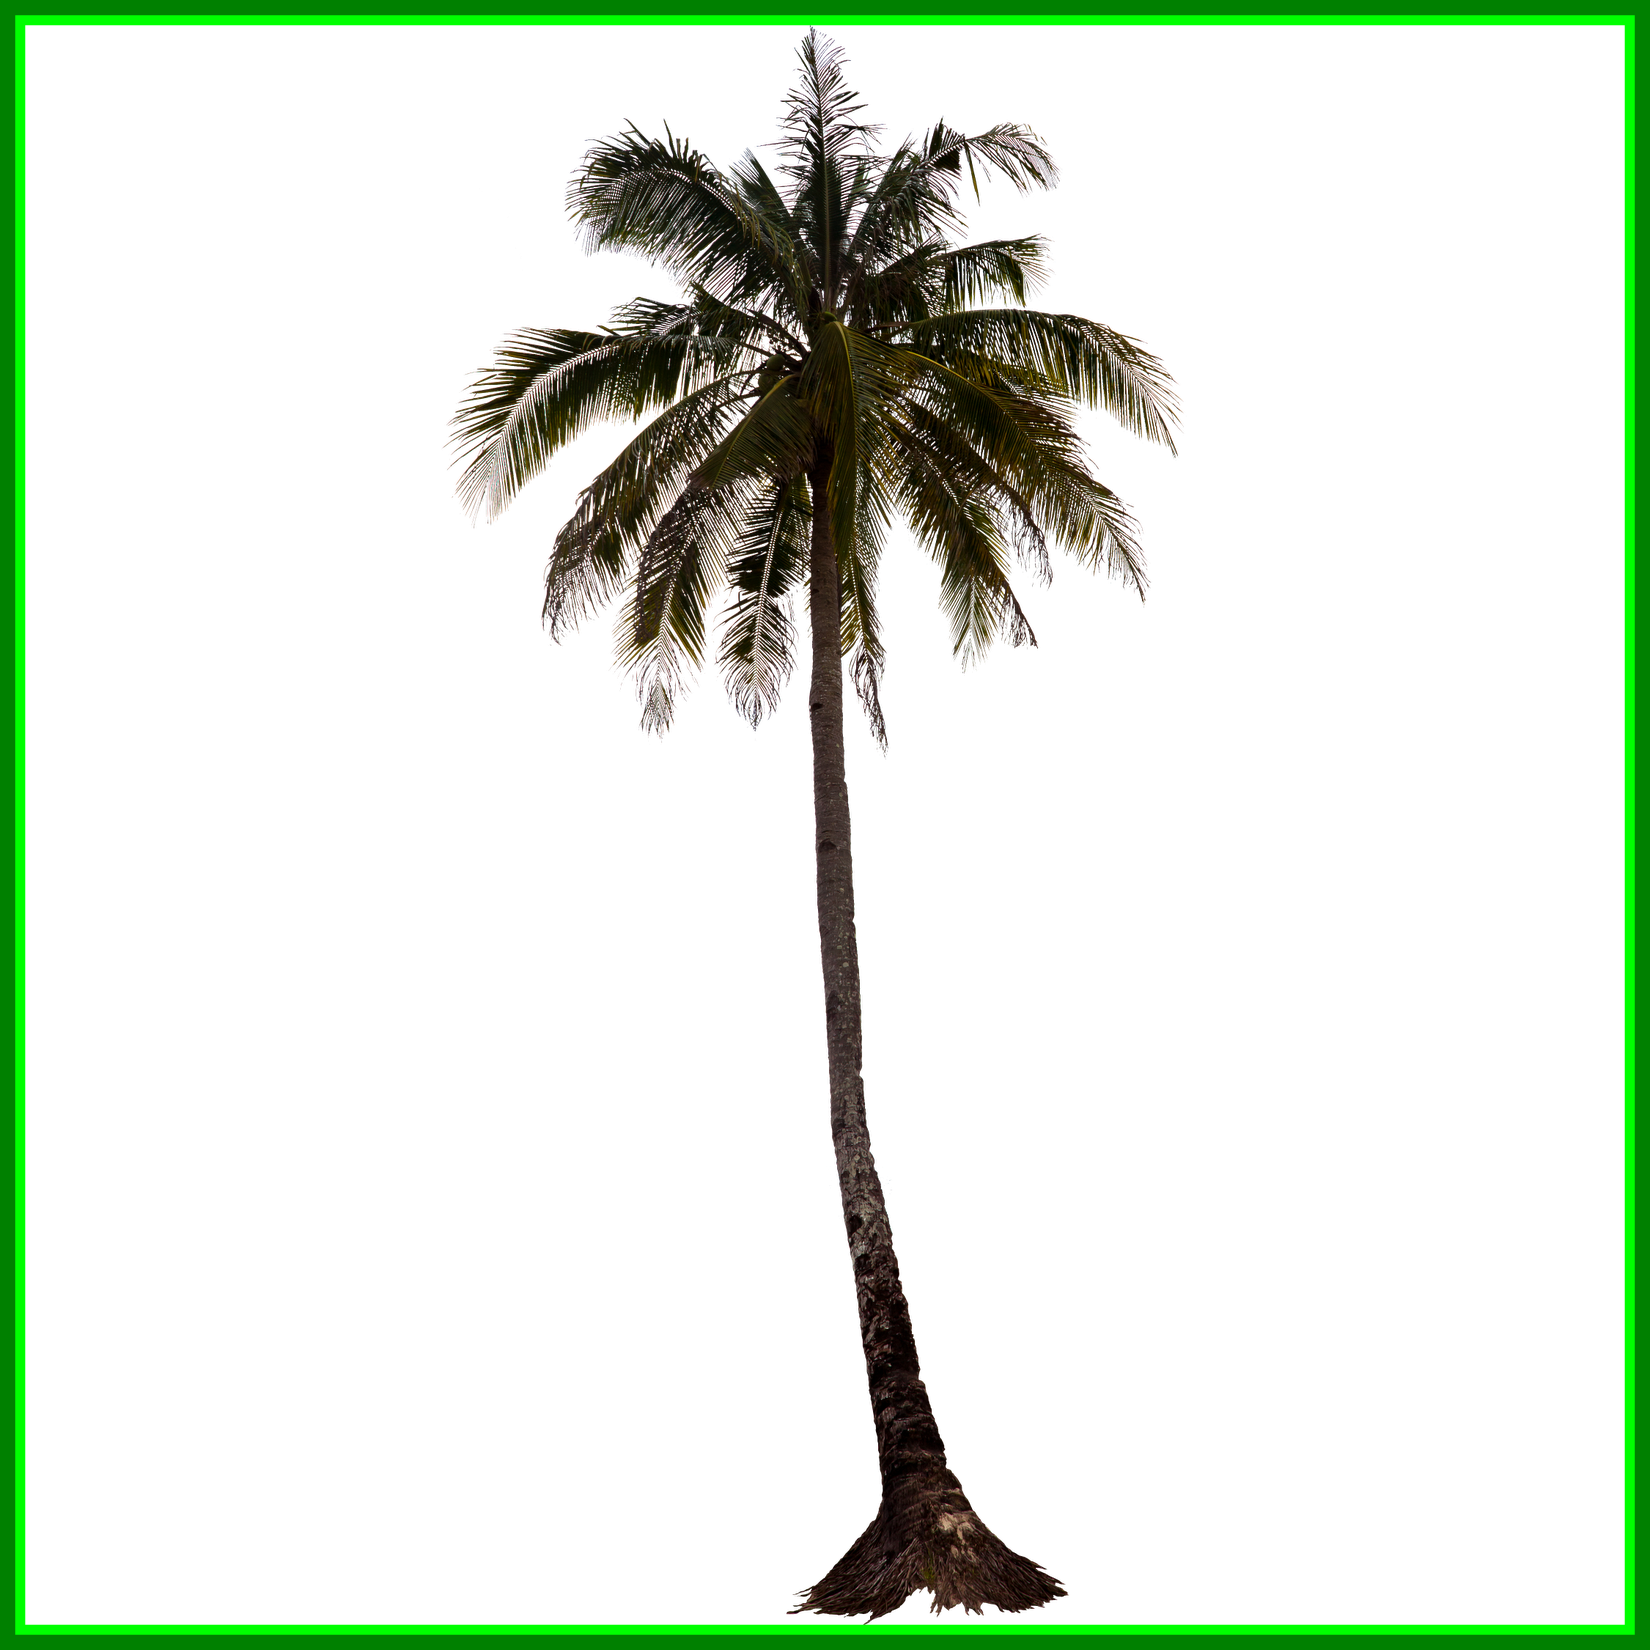 Palm tree photoshop png. Appealing image result for